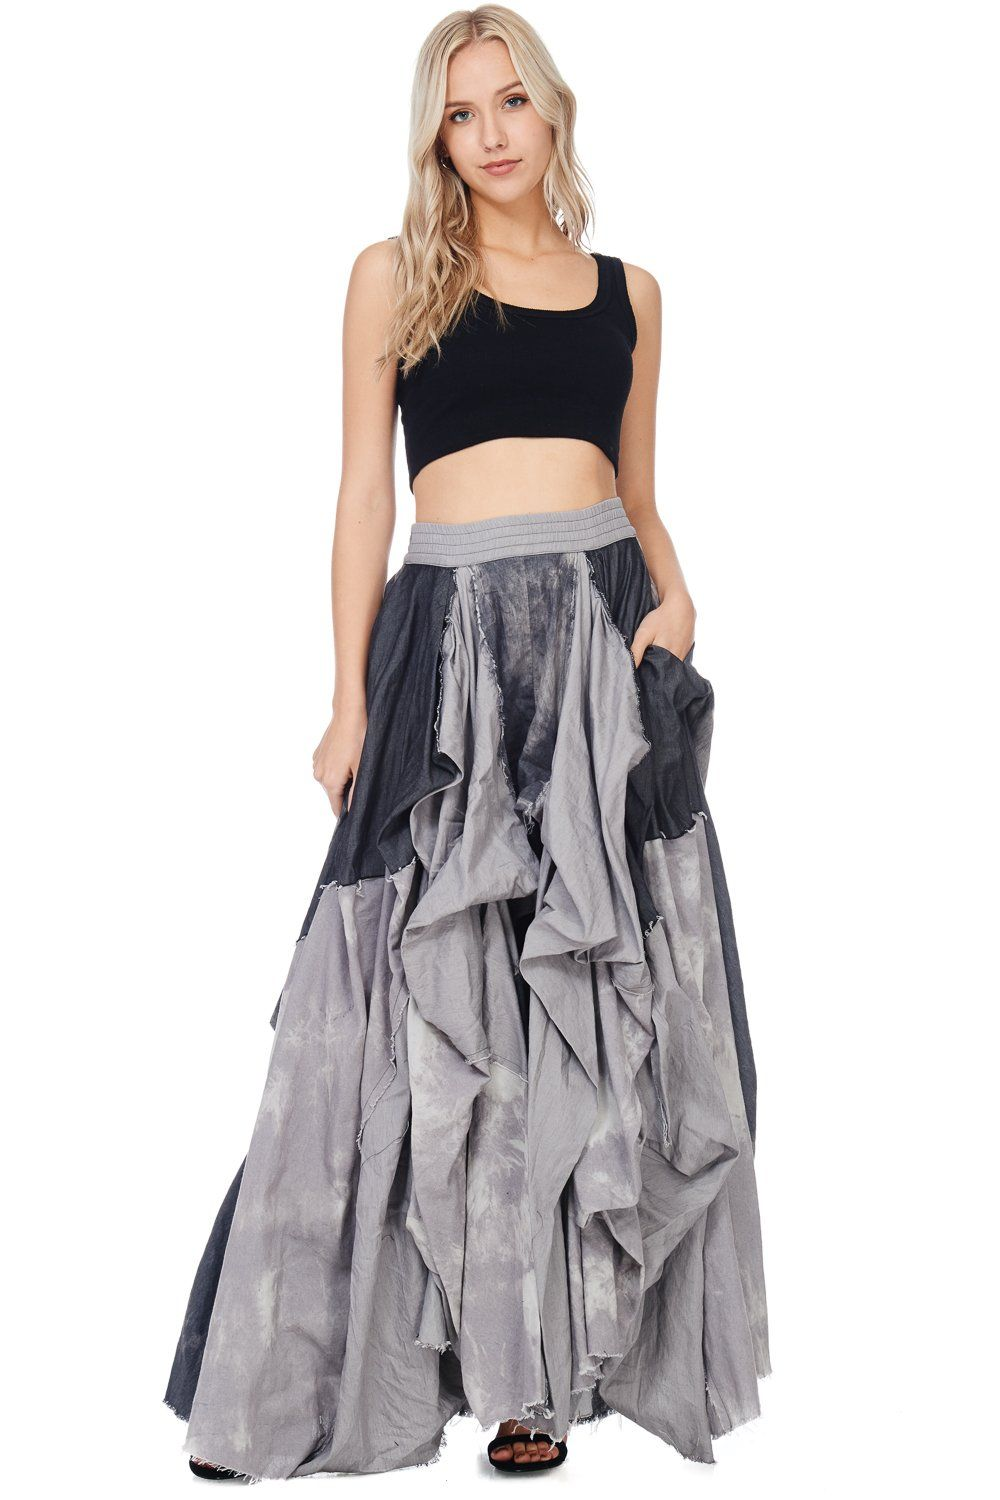 781d2355937d The denim maxi skirt is back in with vengeance in Black! Floor length maxi  skirt with 2 denim side pockets and ruffled pleats. Add this Edgy-Chic  Piece to ...